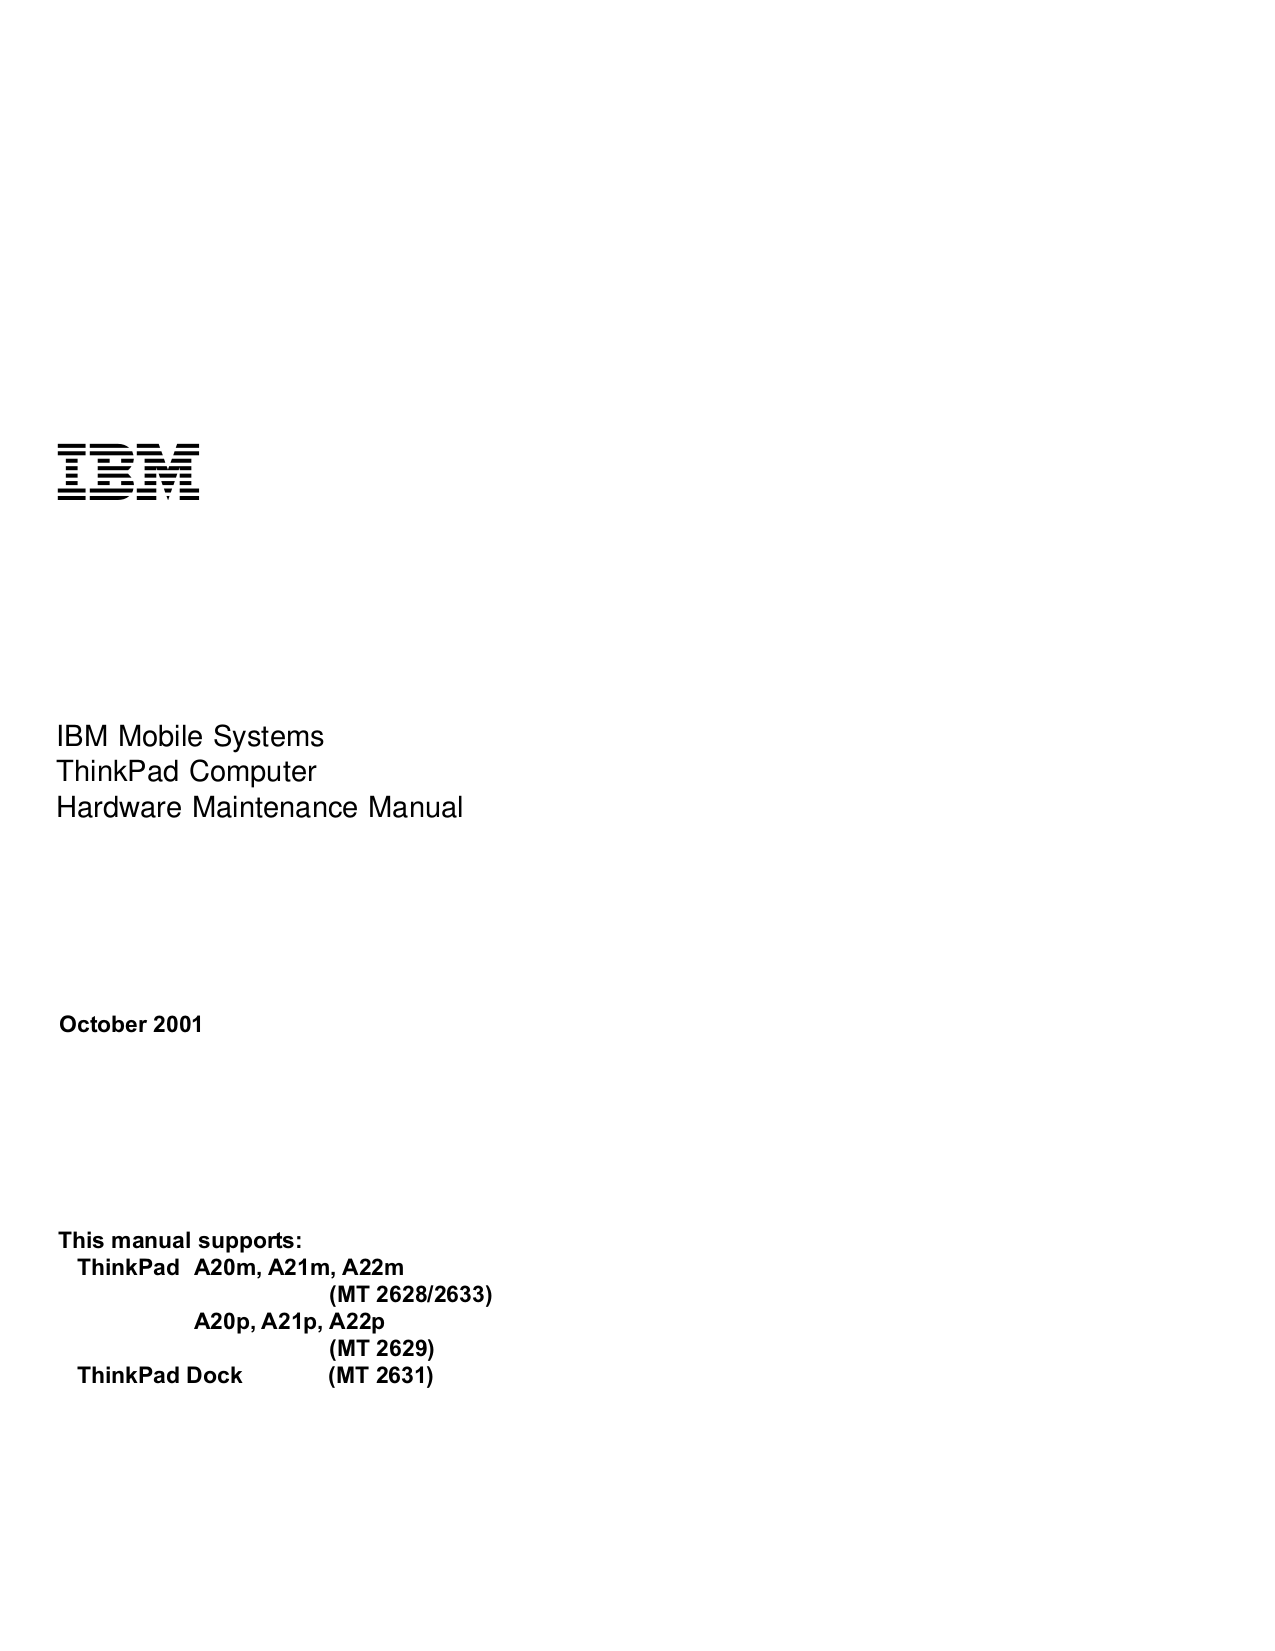 pdf for IBM Laptop ThinkPad A22m manual